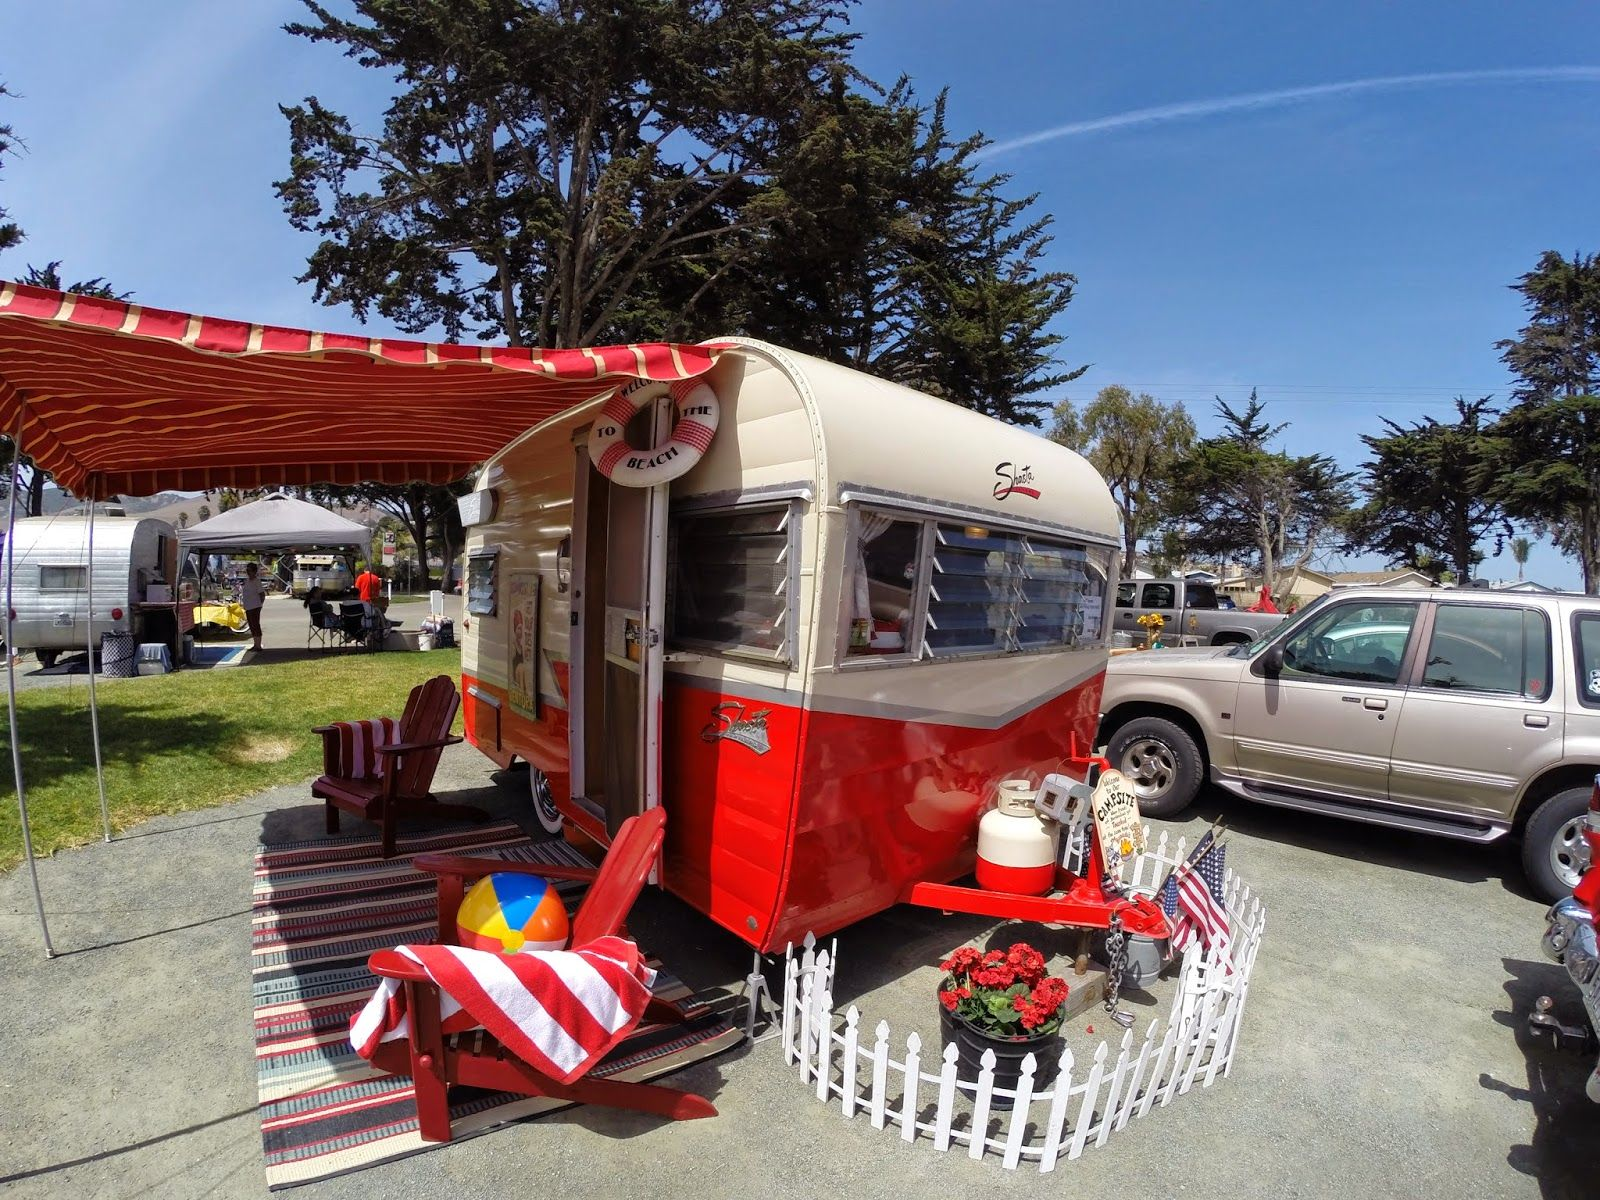 Vintage Trailer Rally Pismo Beach Re Pin Brought To You By Houseofinsurance For Autoinsurance Eugeneoregon